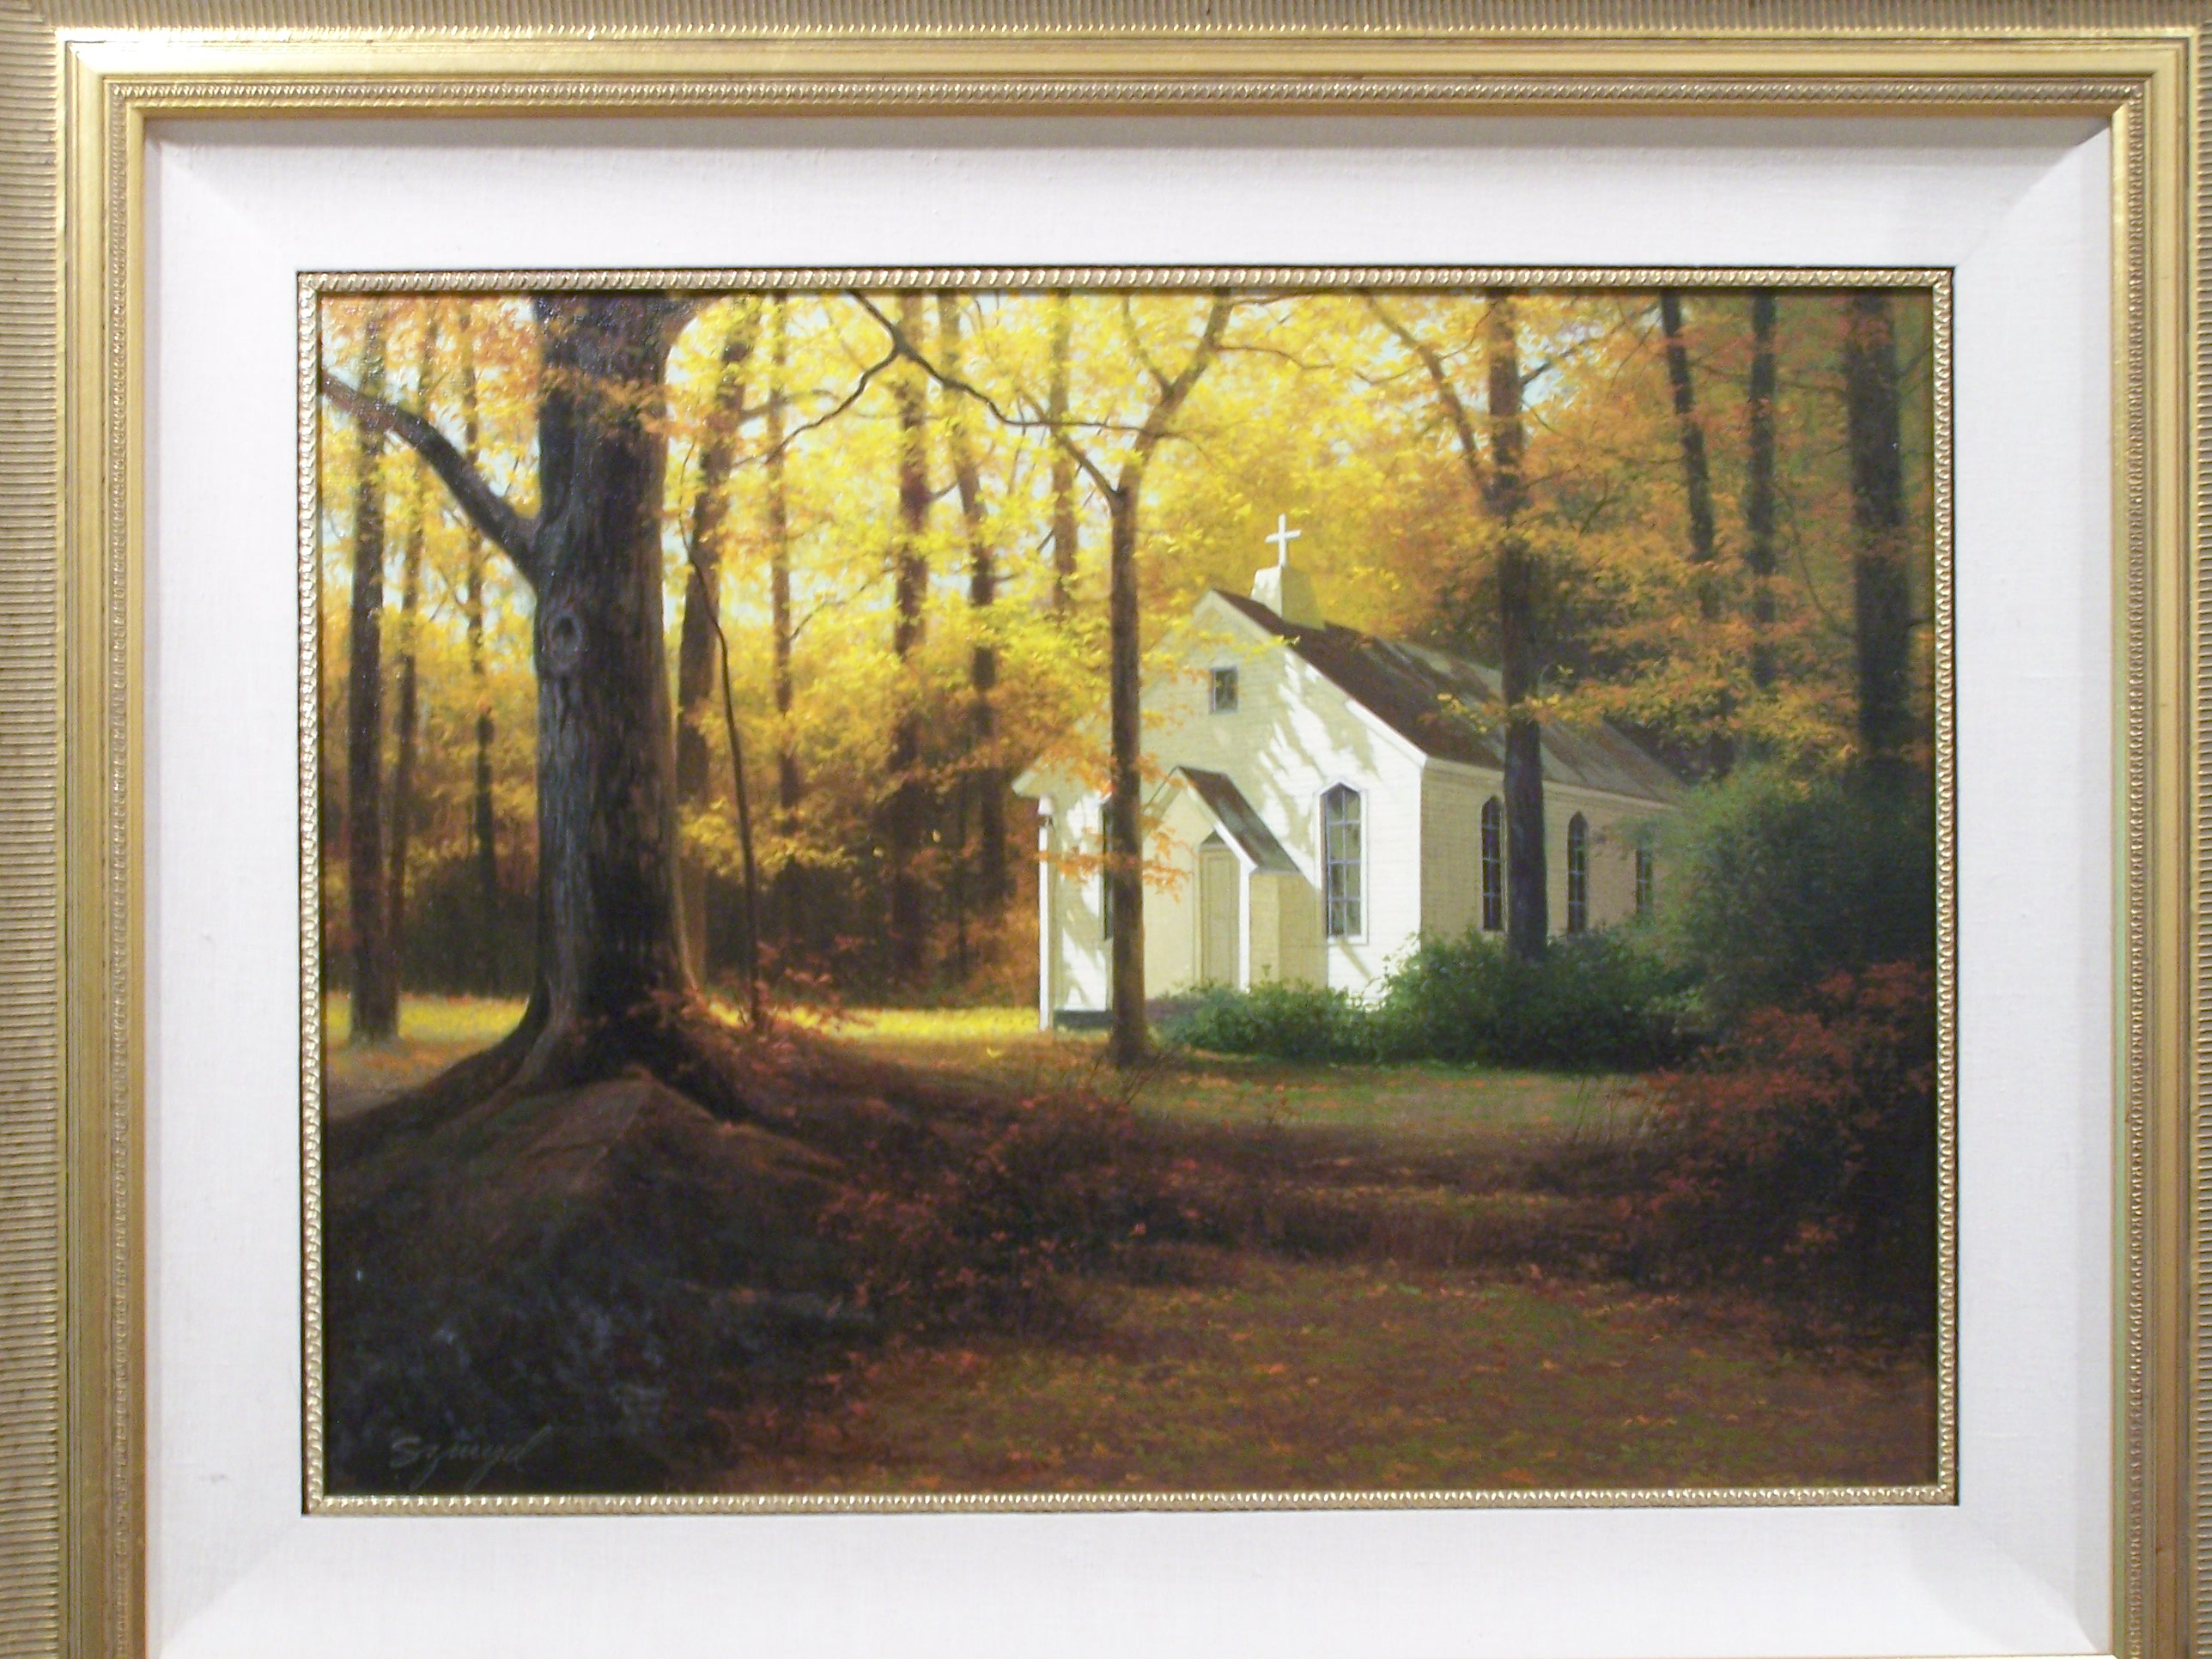 Little Church in the Woods artwork by Edward Szmed - art listed for sale on Artplode